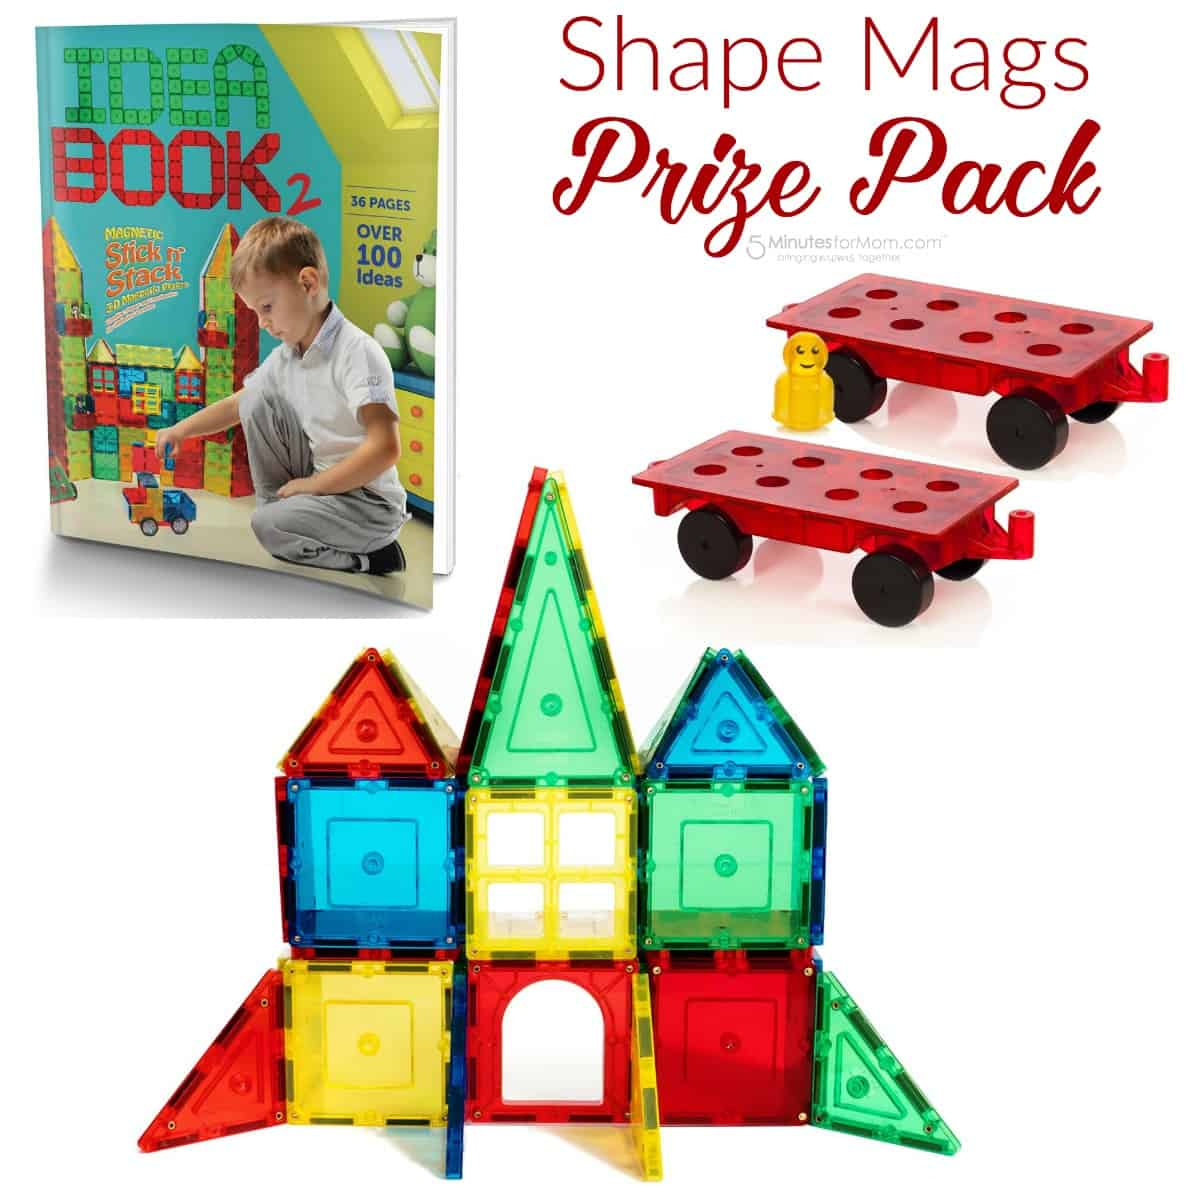 Shape Mags Prize Pack